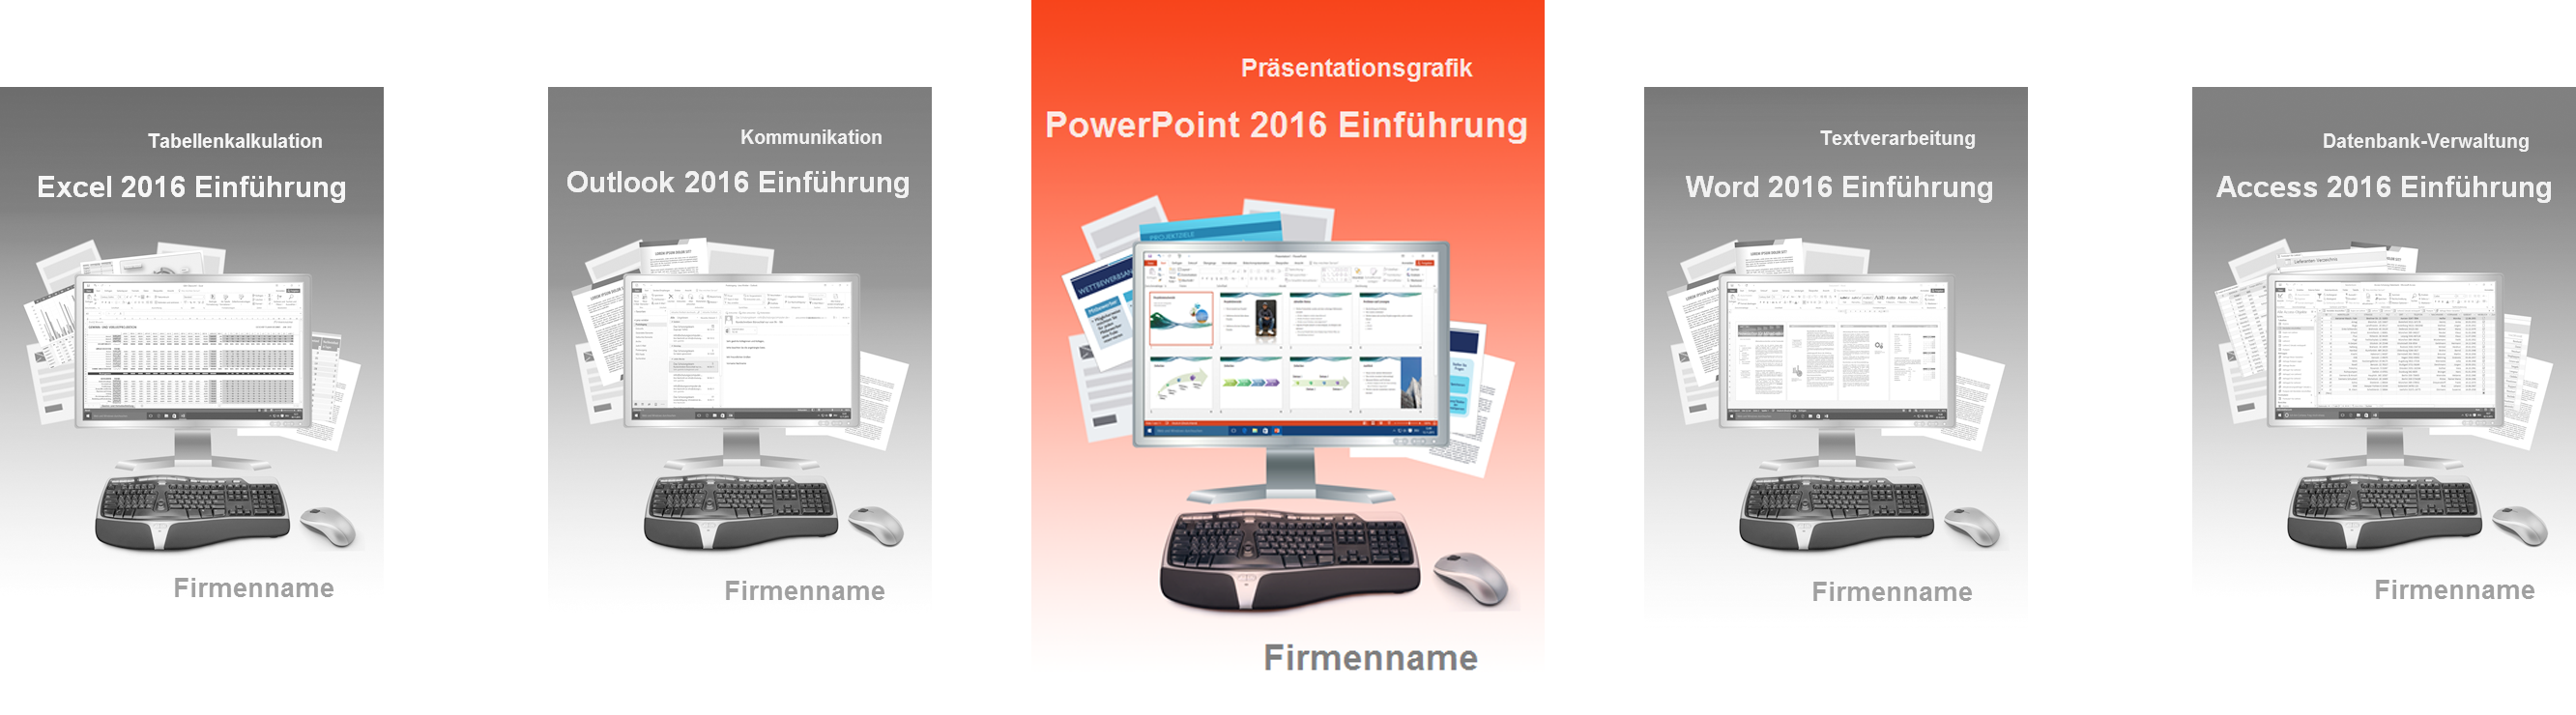 Lehrmaterial PowerPoint 2016 Einführung Cover